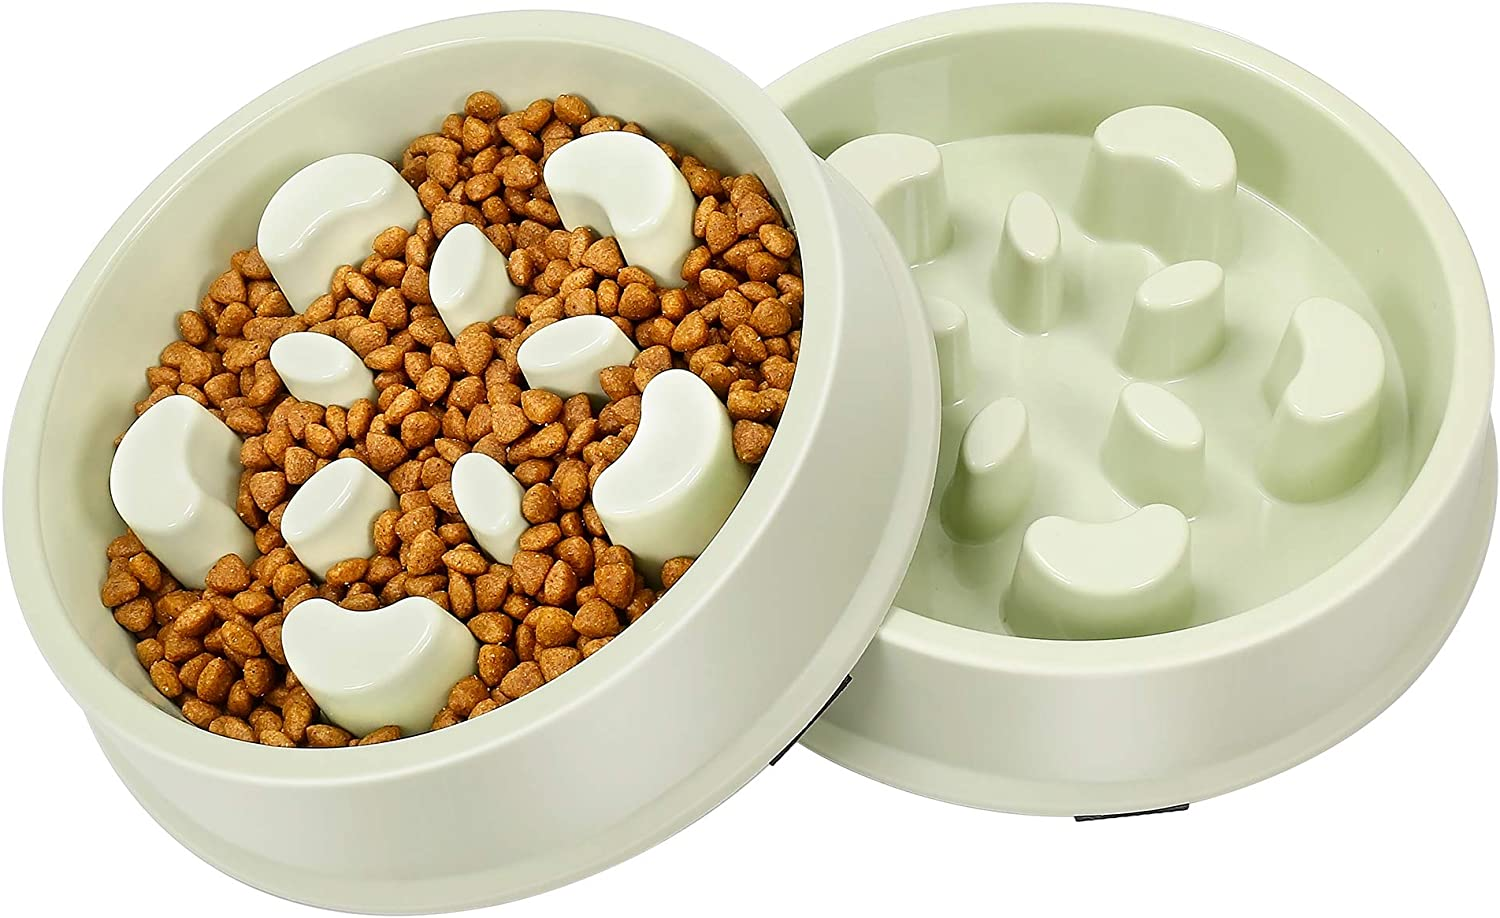 UPSKY Slow Feeder Dog Bowl No Choking Slow Feeder Bloat Stop Dog Food Water Bowl with Funny Pattern (Set of 2)